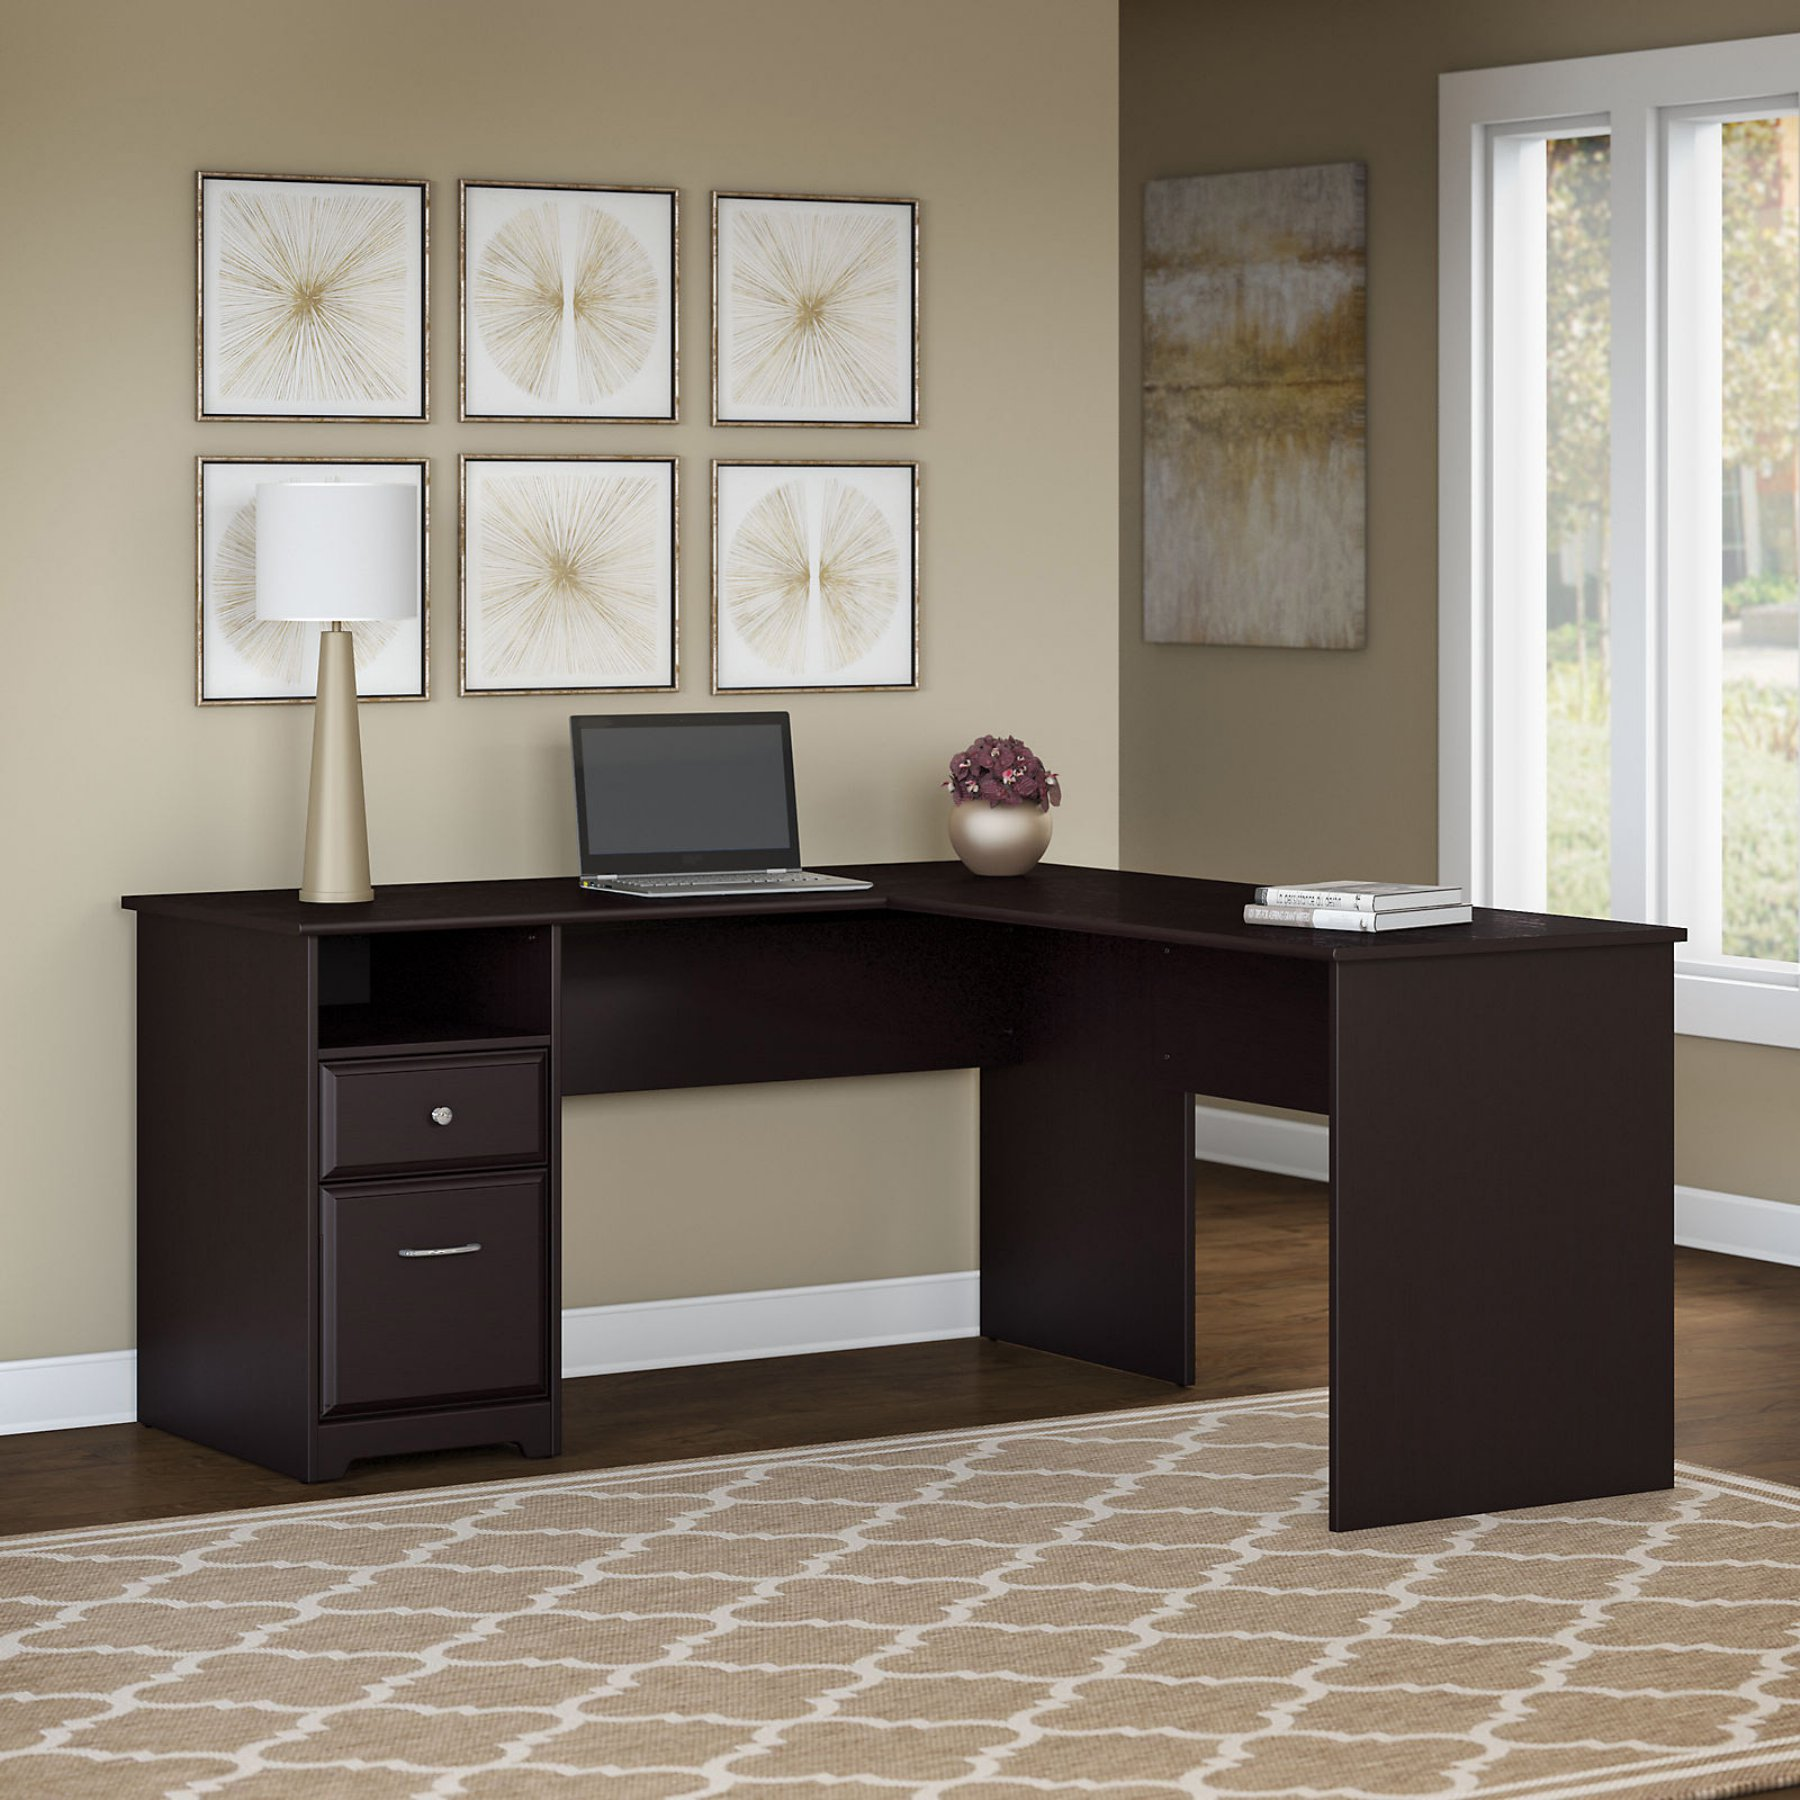 Bush Furniture Cabot L Shaped Computer Desk With Drawers And Optional